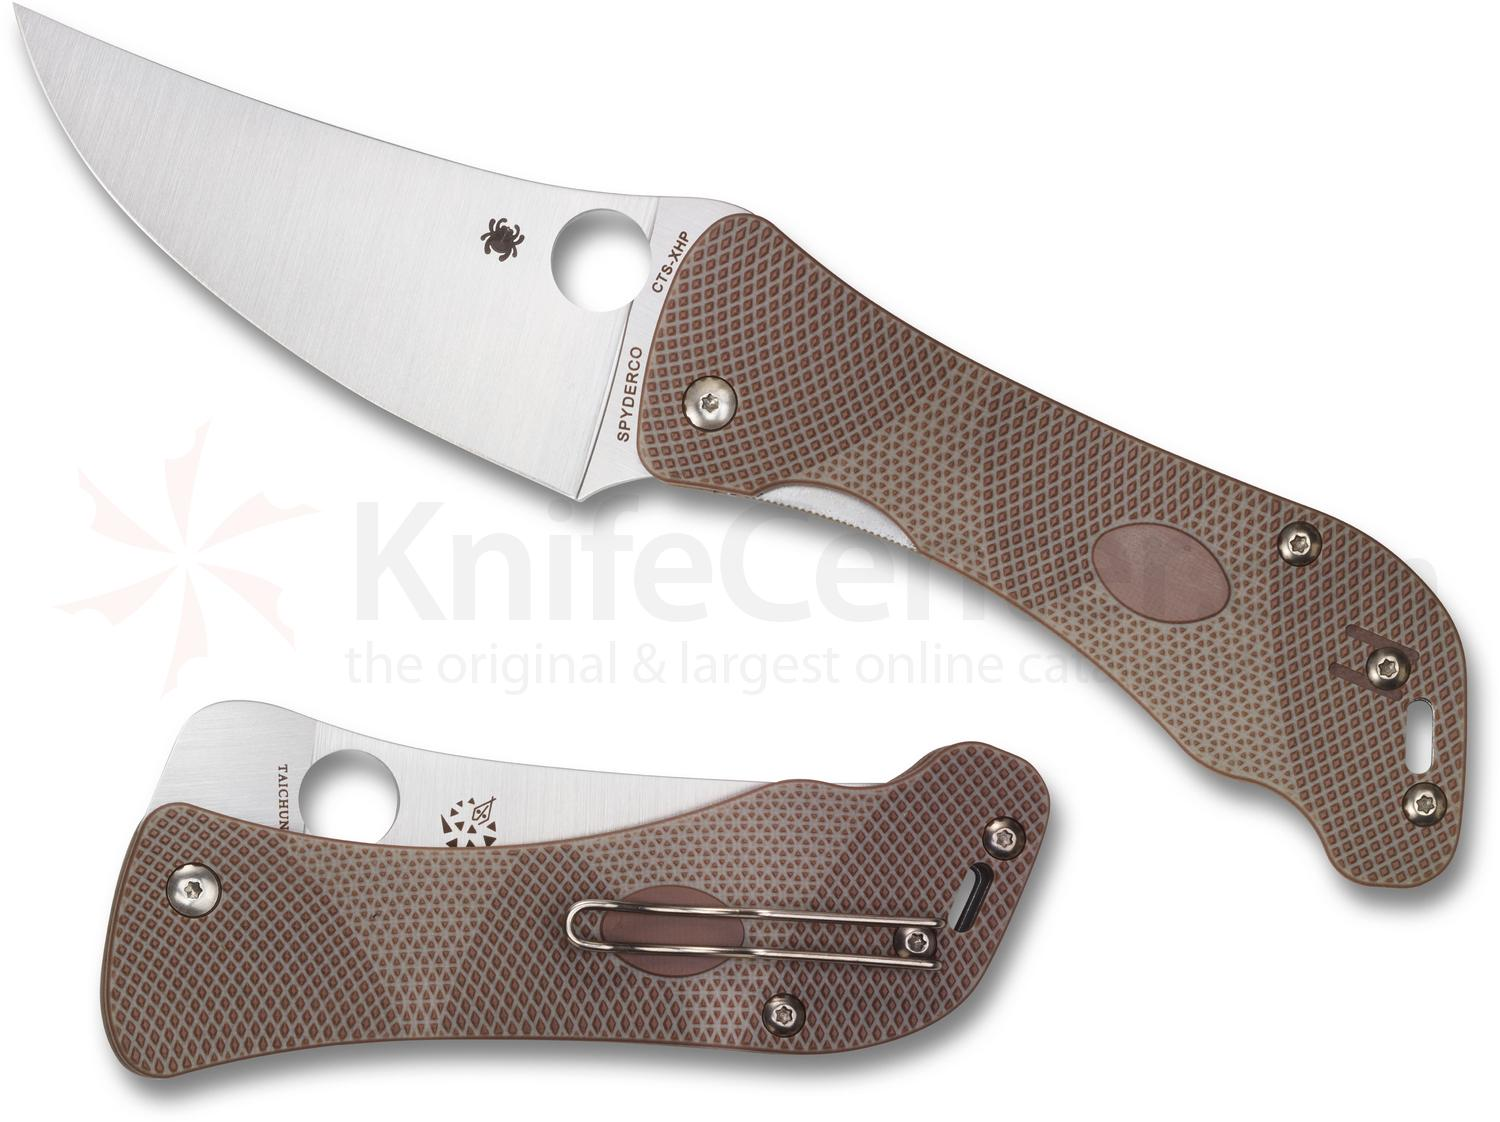 Spyderco Hundred Pacer Folding Knife 3.99 inch CTS-XHP Satin Plain Blade, 3D Machined Brown/Tan G10 Handles